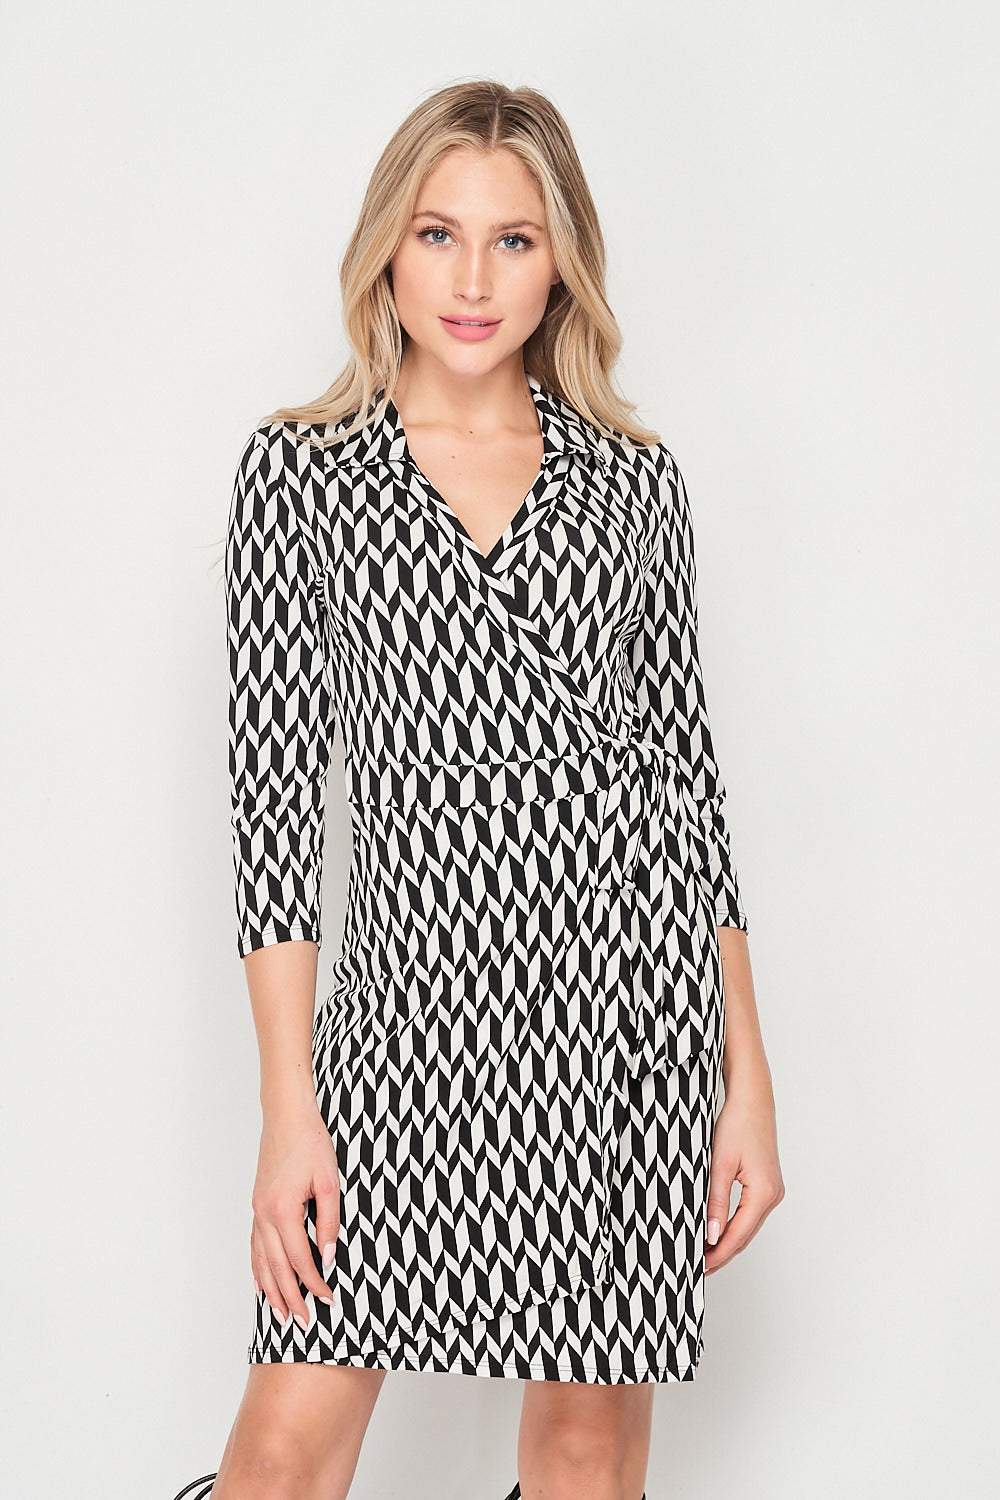 Blank Lewks | It's A Wrap Printed Dress | Black/White